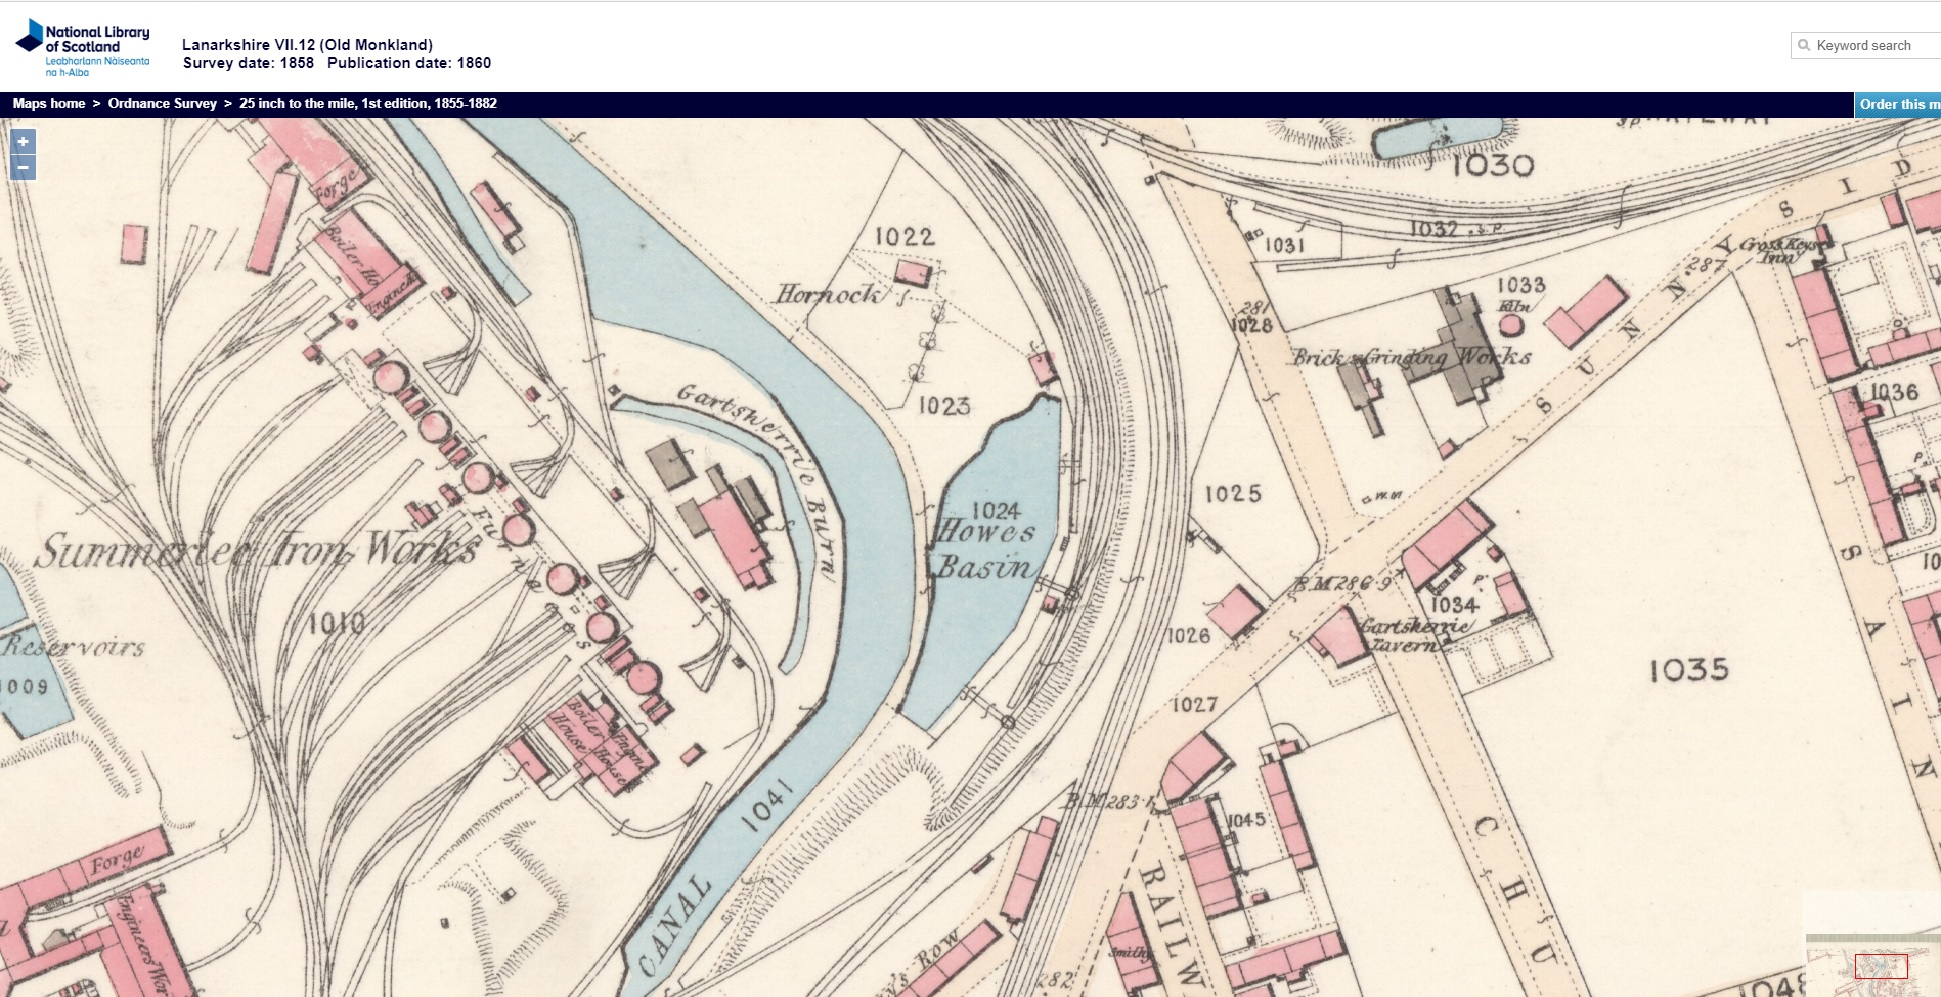 Howes Basin surveyed in 1858 from the first Ordnance Survey (courtesy of the National Library of Scotland).